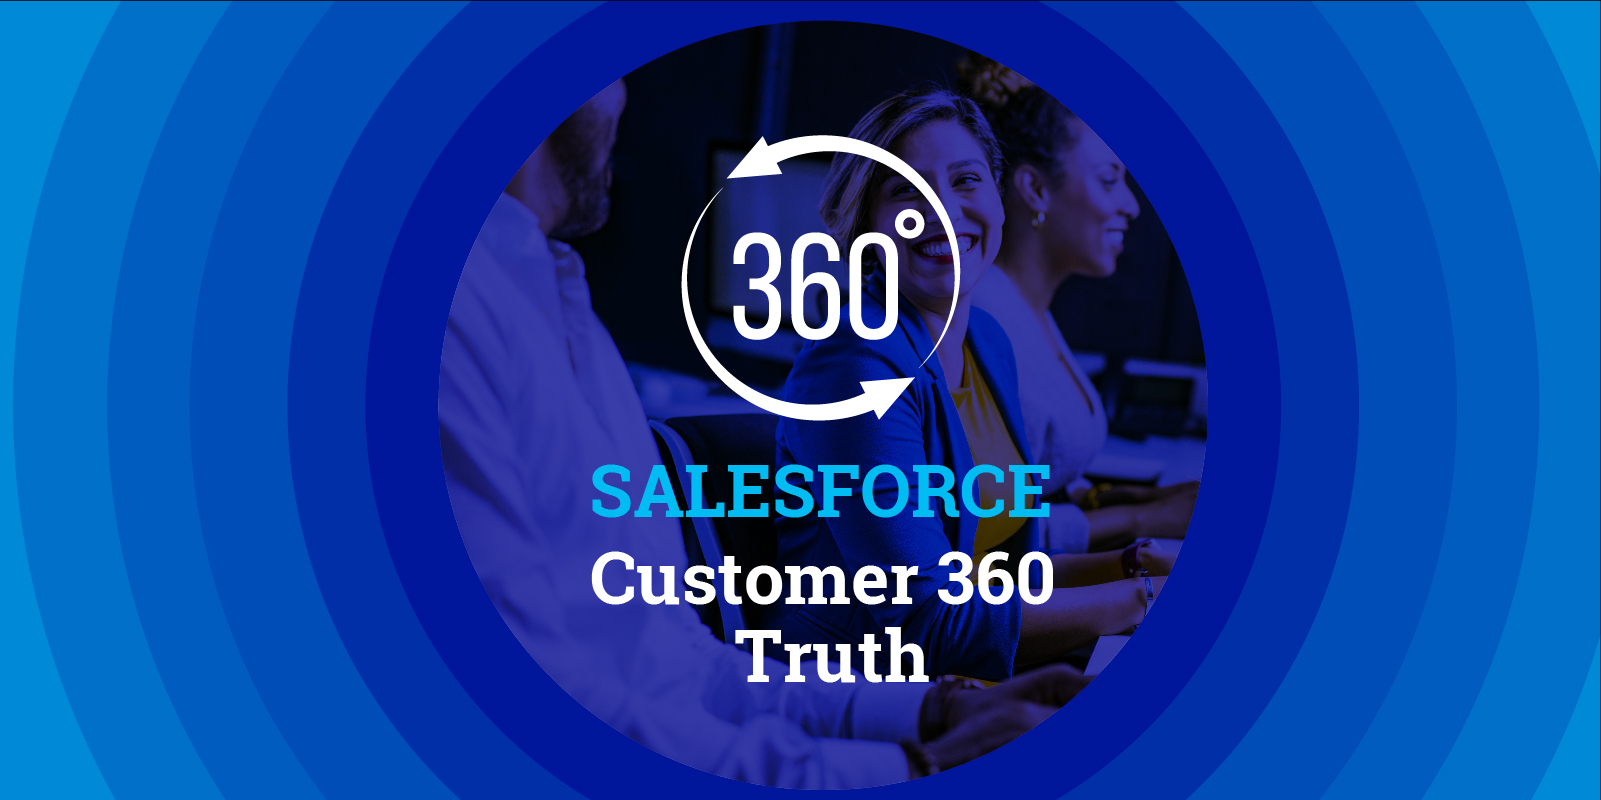 Salesforce Customer 360 Truth